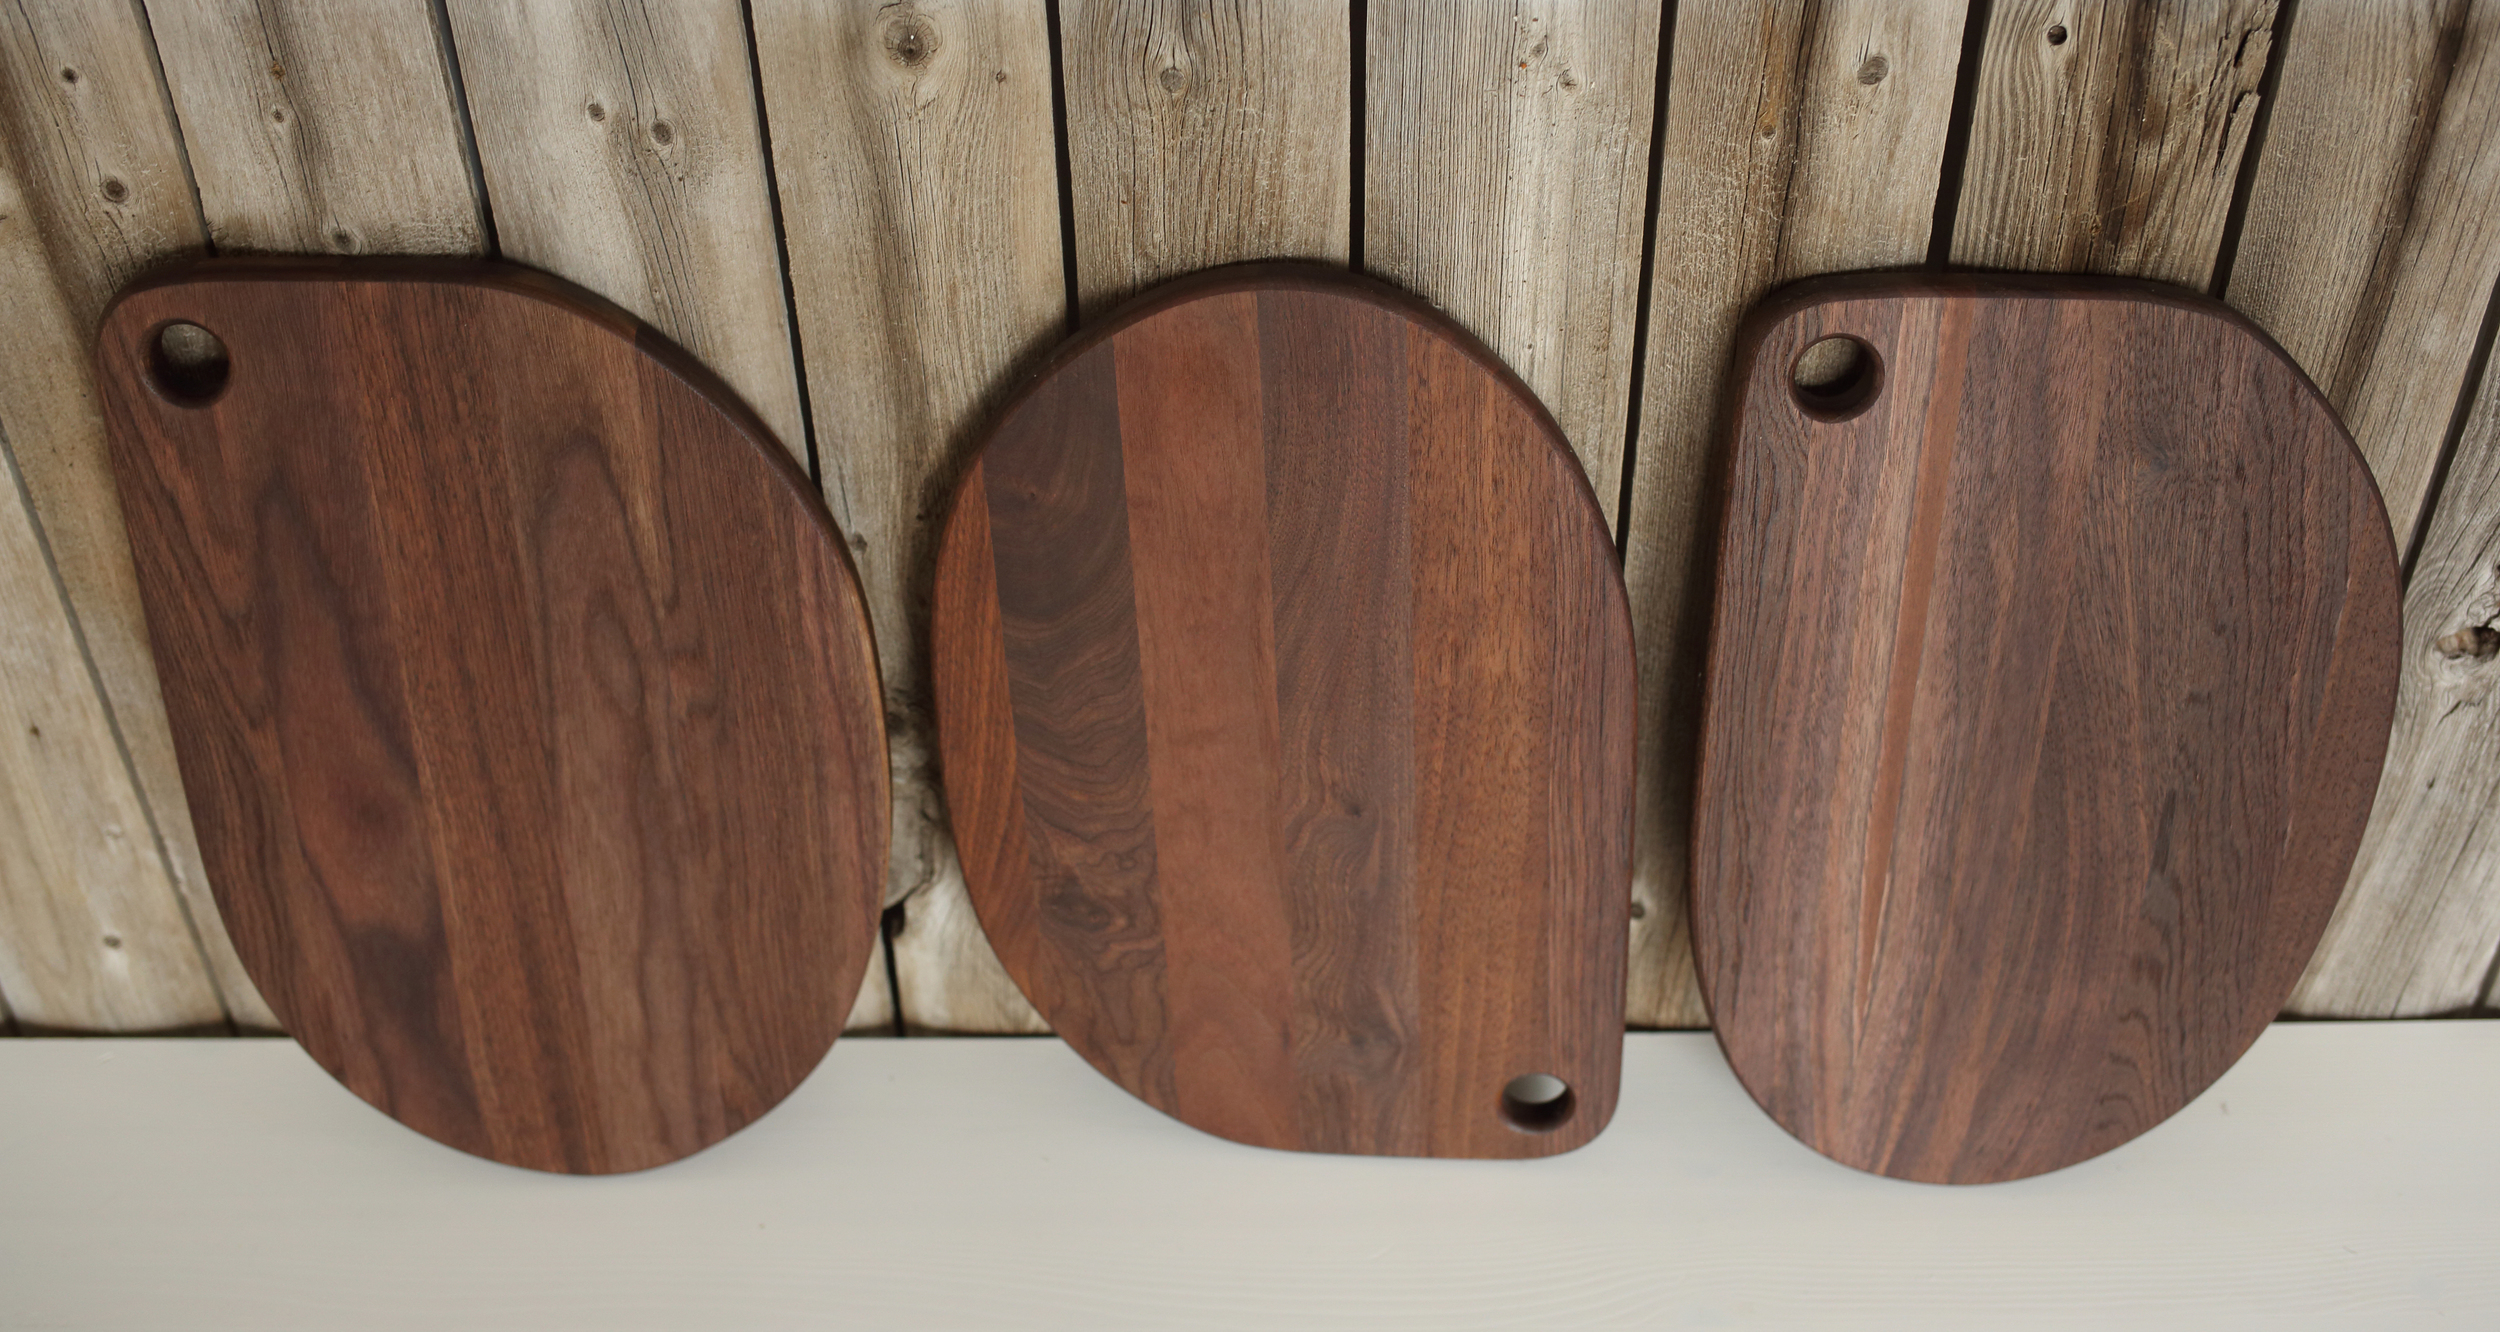 Locally Sourced, Non-Harvested Walnut Serving Boards